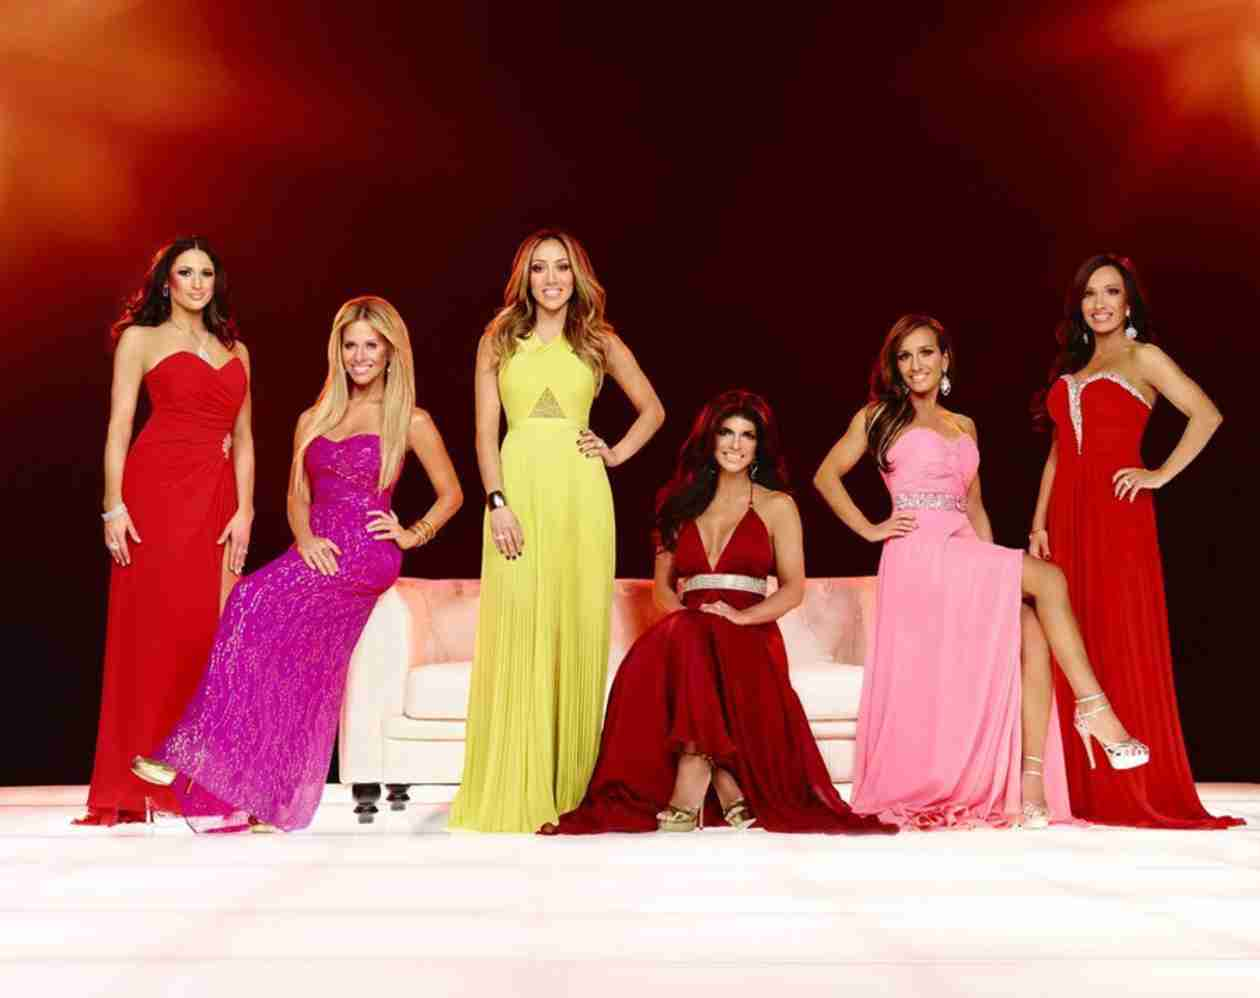 Does Dina Manzo Like the New RHONJ Cast Members?